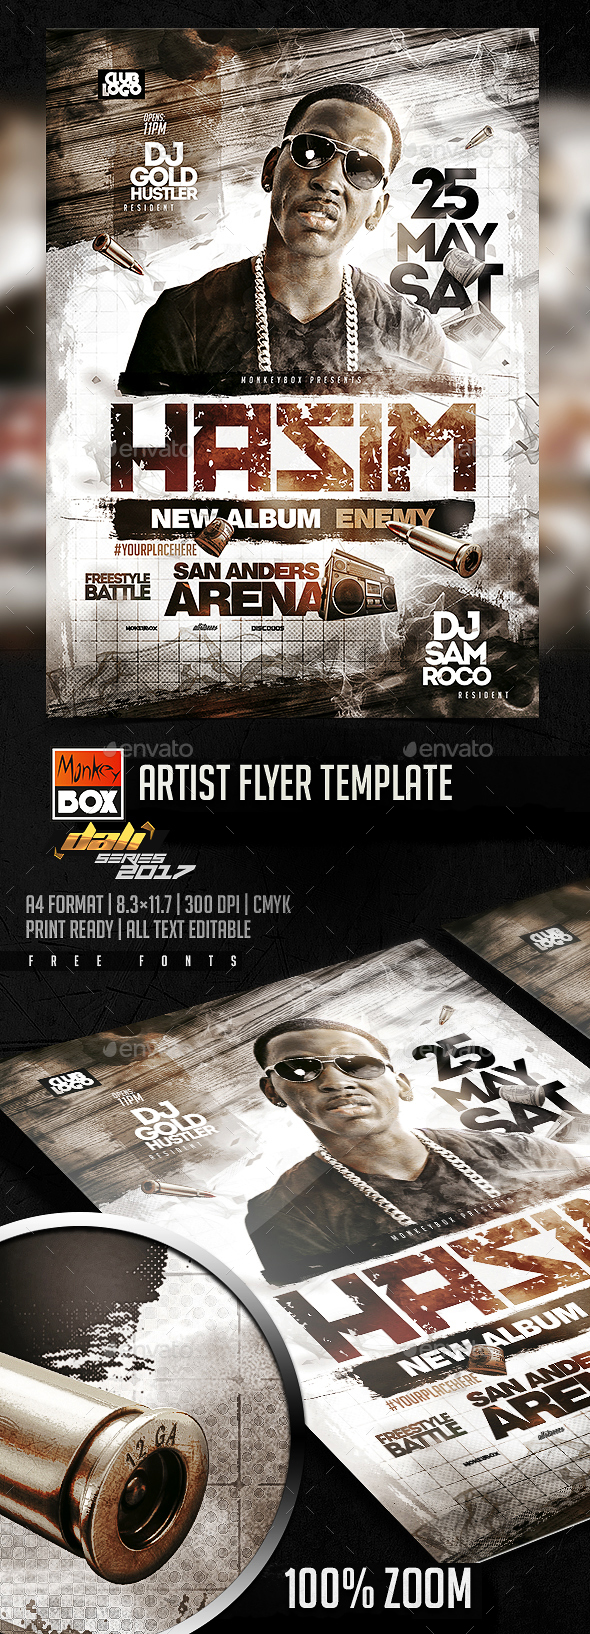 Artist Flyer Template - Flyers Print Templates